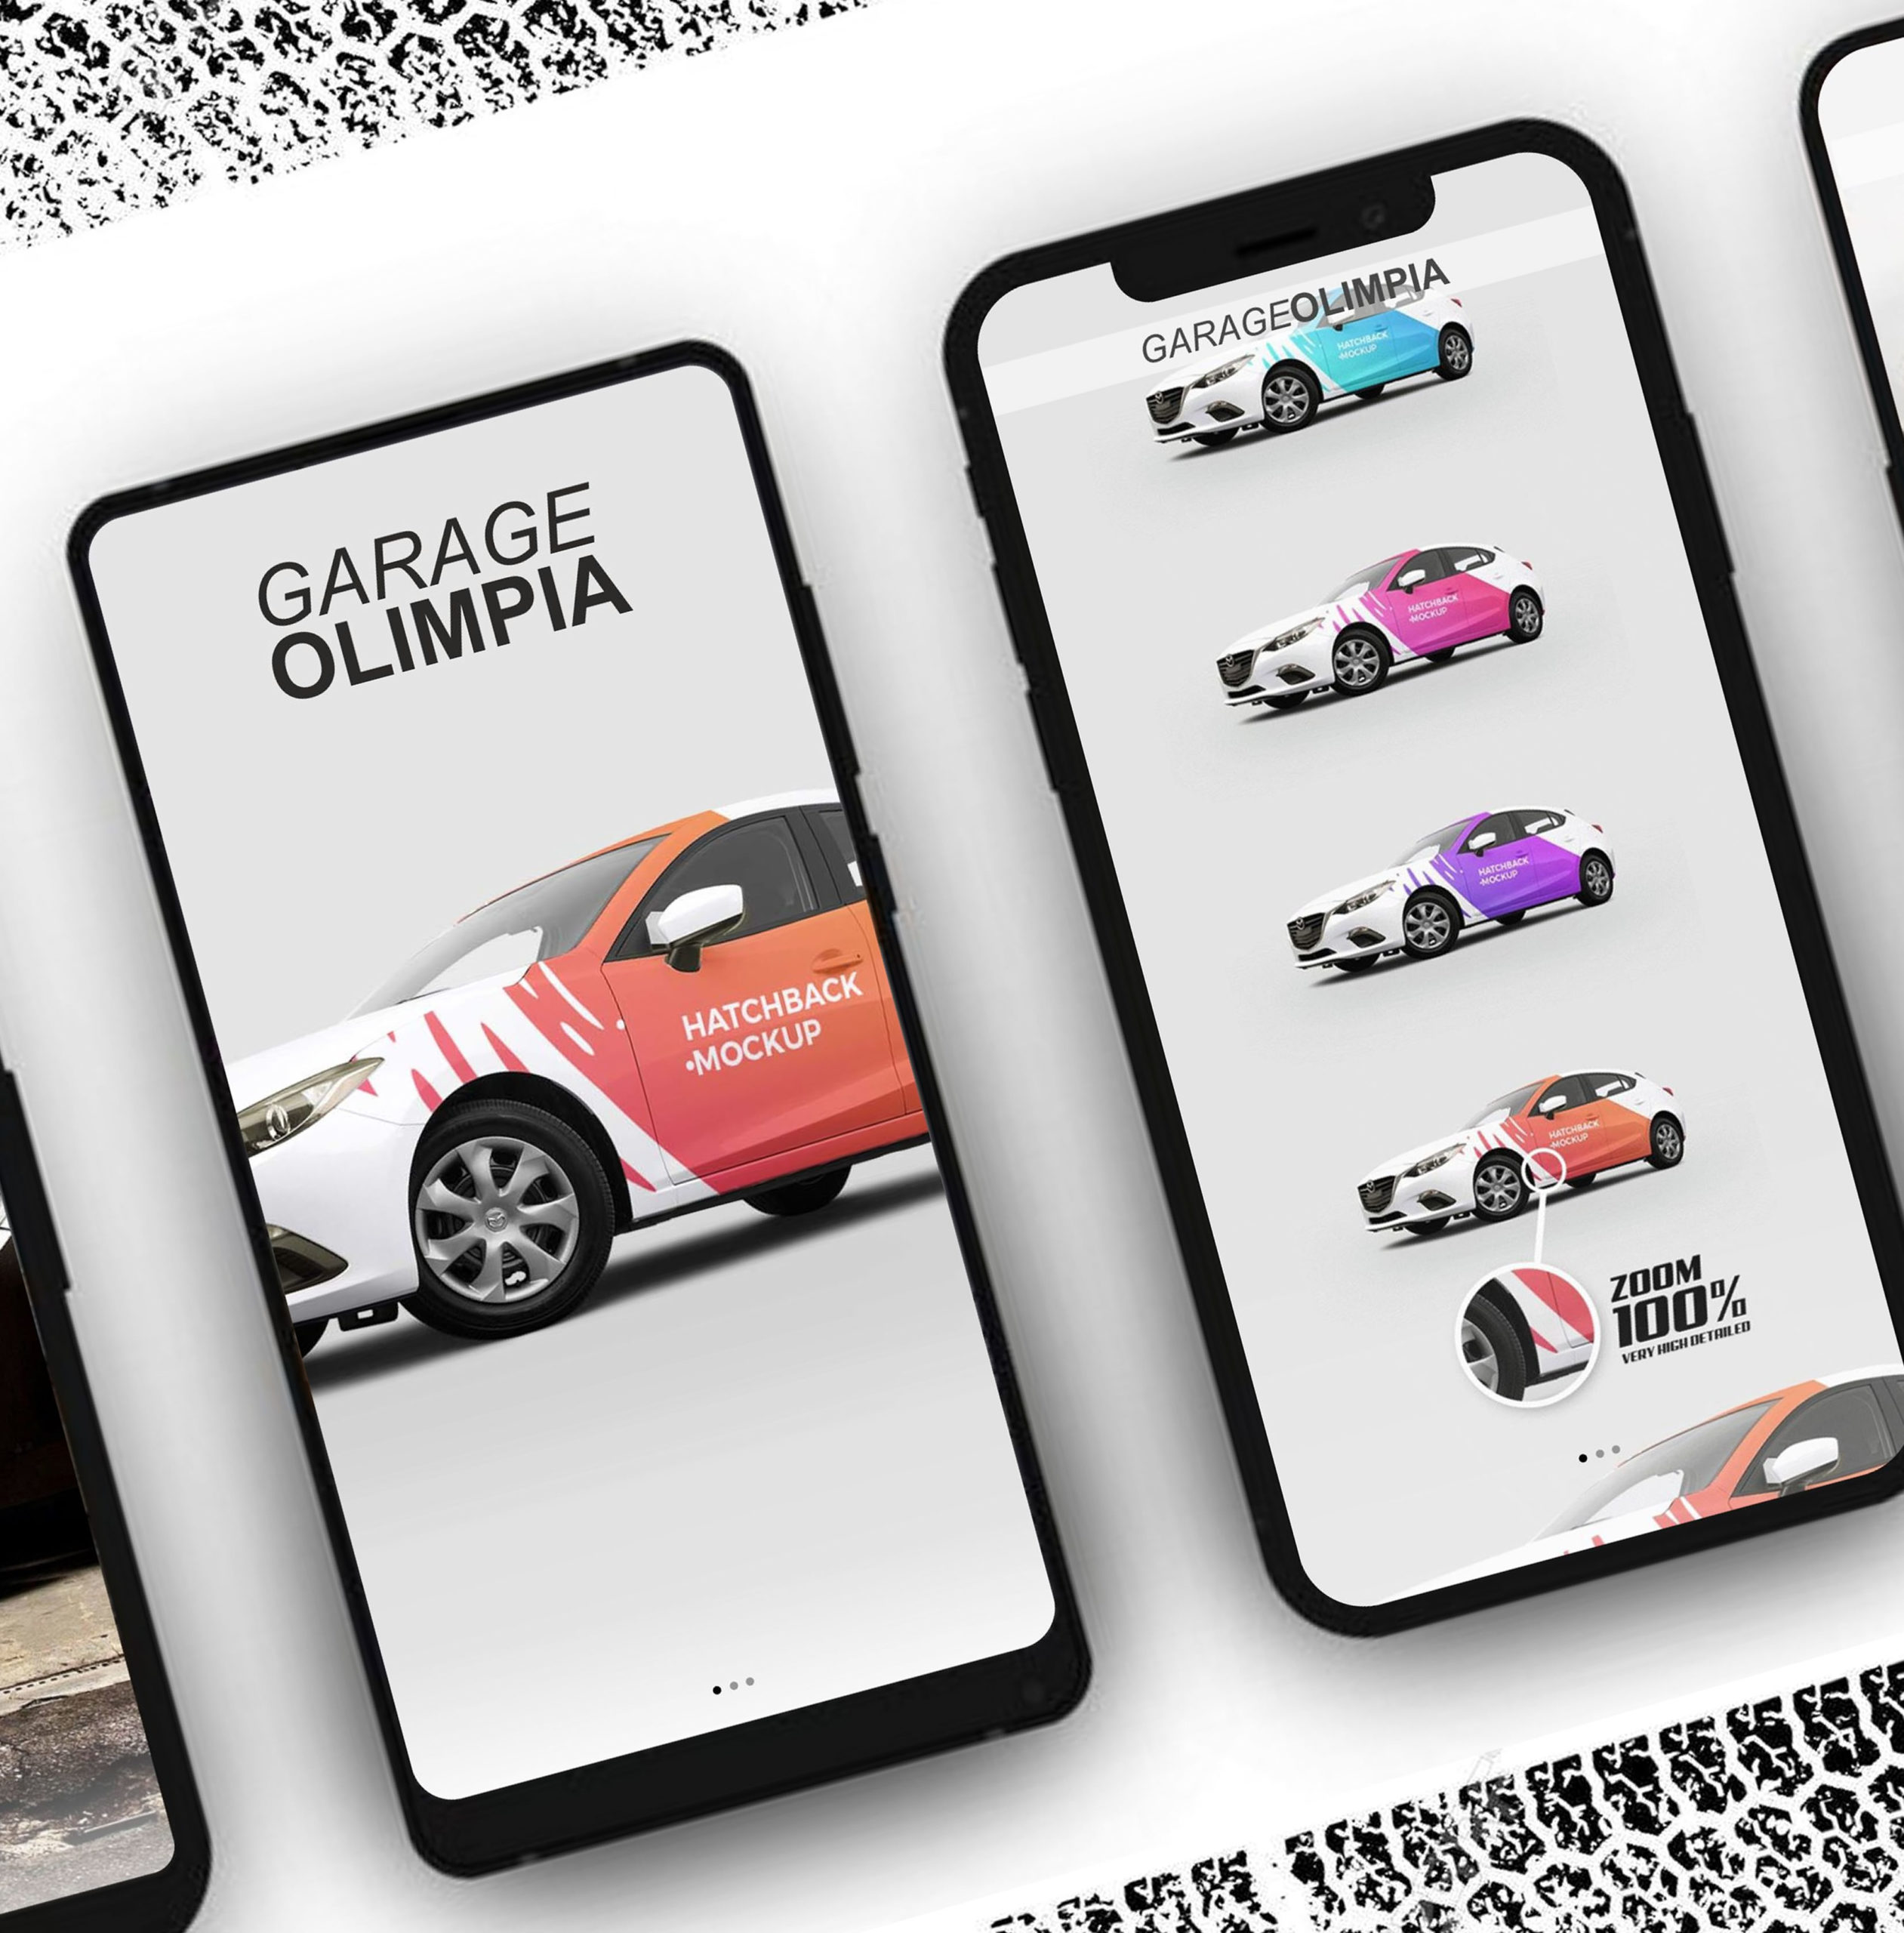 Web site for GARAGE OLIMPIA in ROME